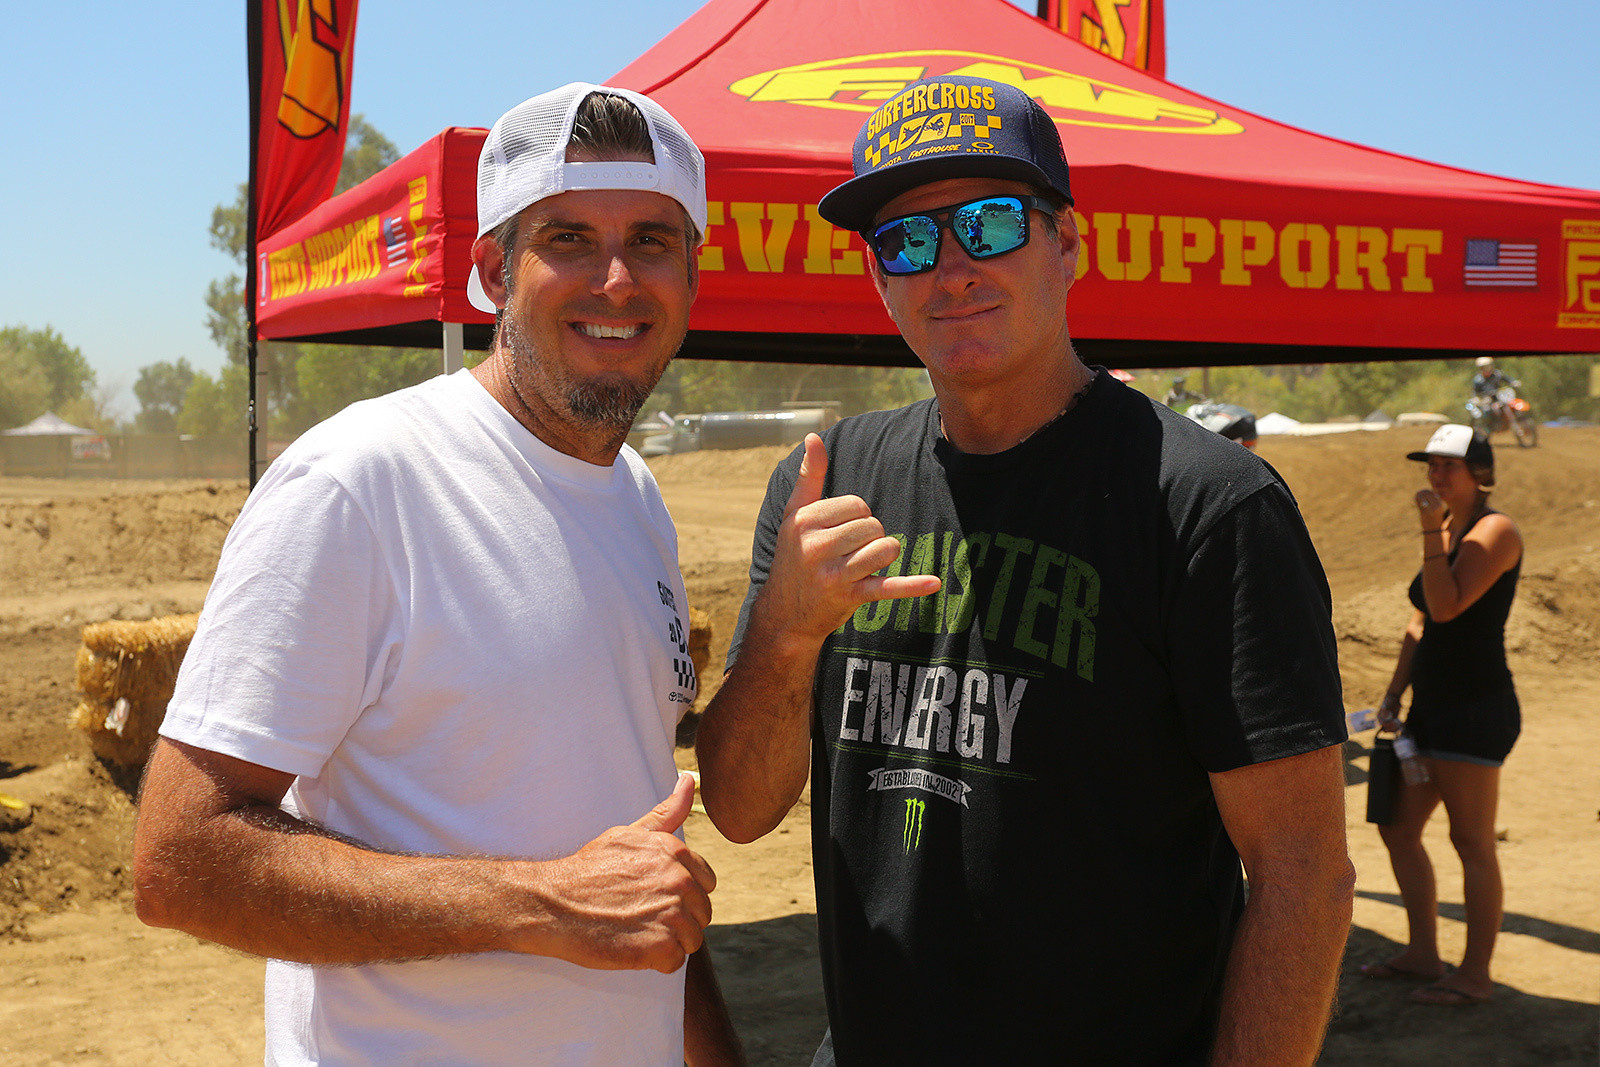 Jeremy Albrecht (left) has always been the driving force on the moto side, and this was what...the 19th edition of this event? Cameron Steele was the announcer for the action.